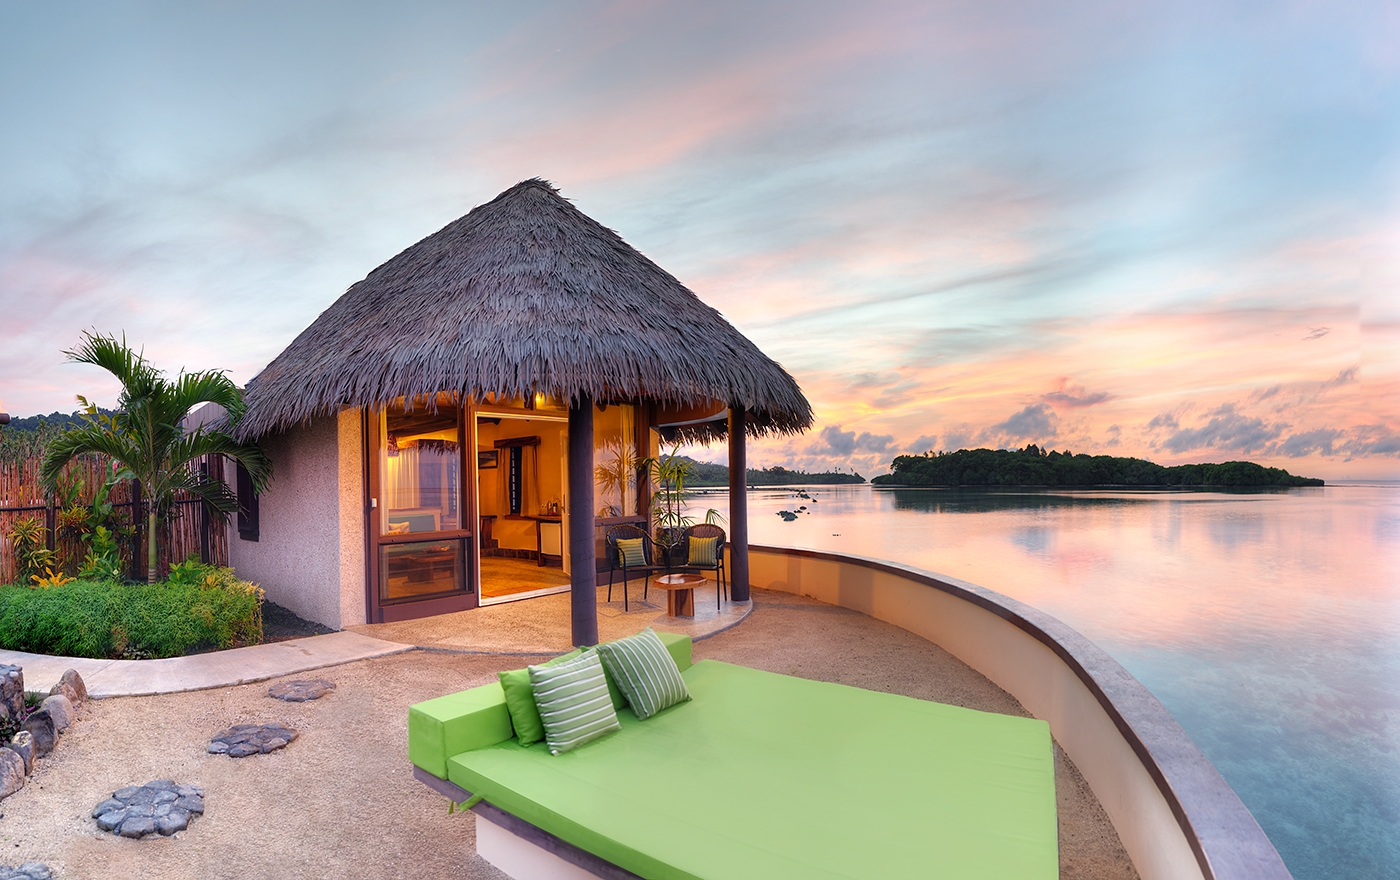 Staying In An Overwater Bungalow In Fiji Koro Sun